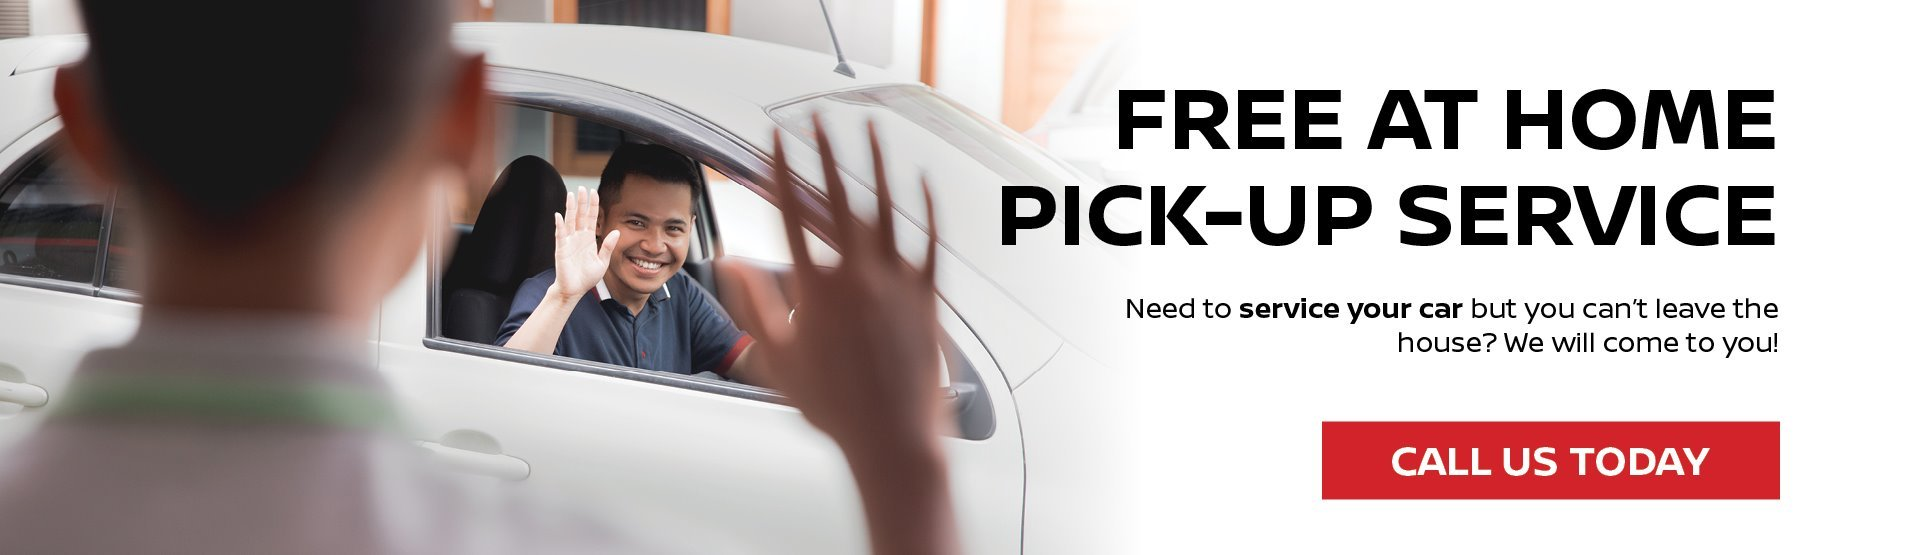 Home Service Pick up sERVICE nISSAN